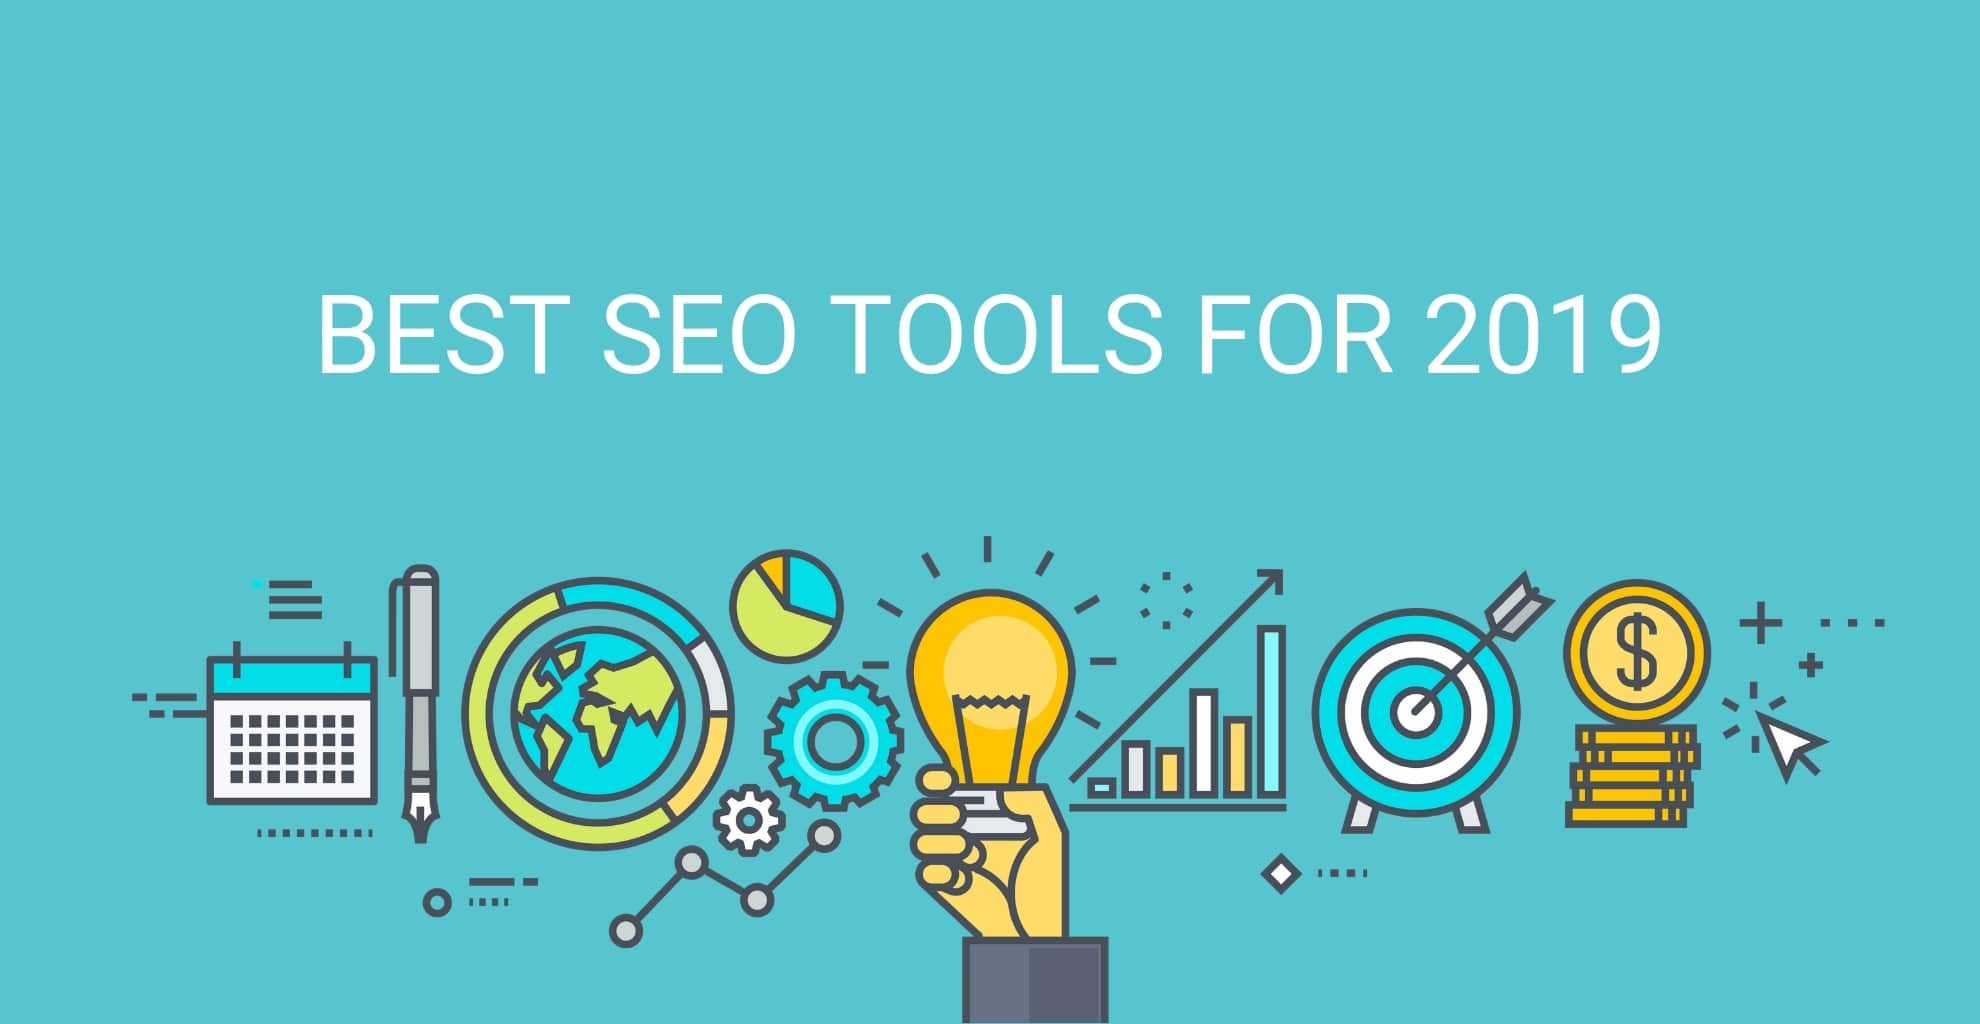 Best SEO Tools For 2019